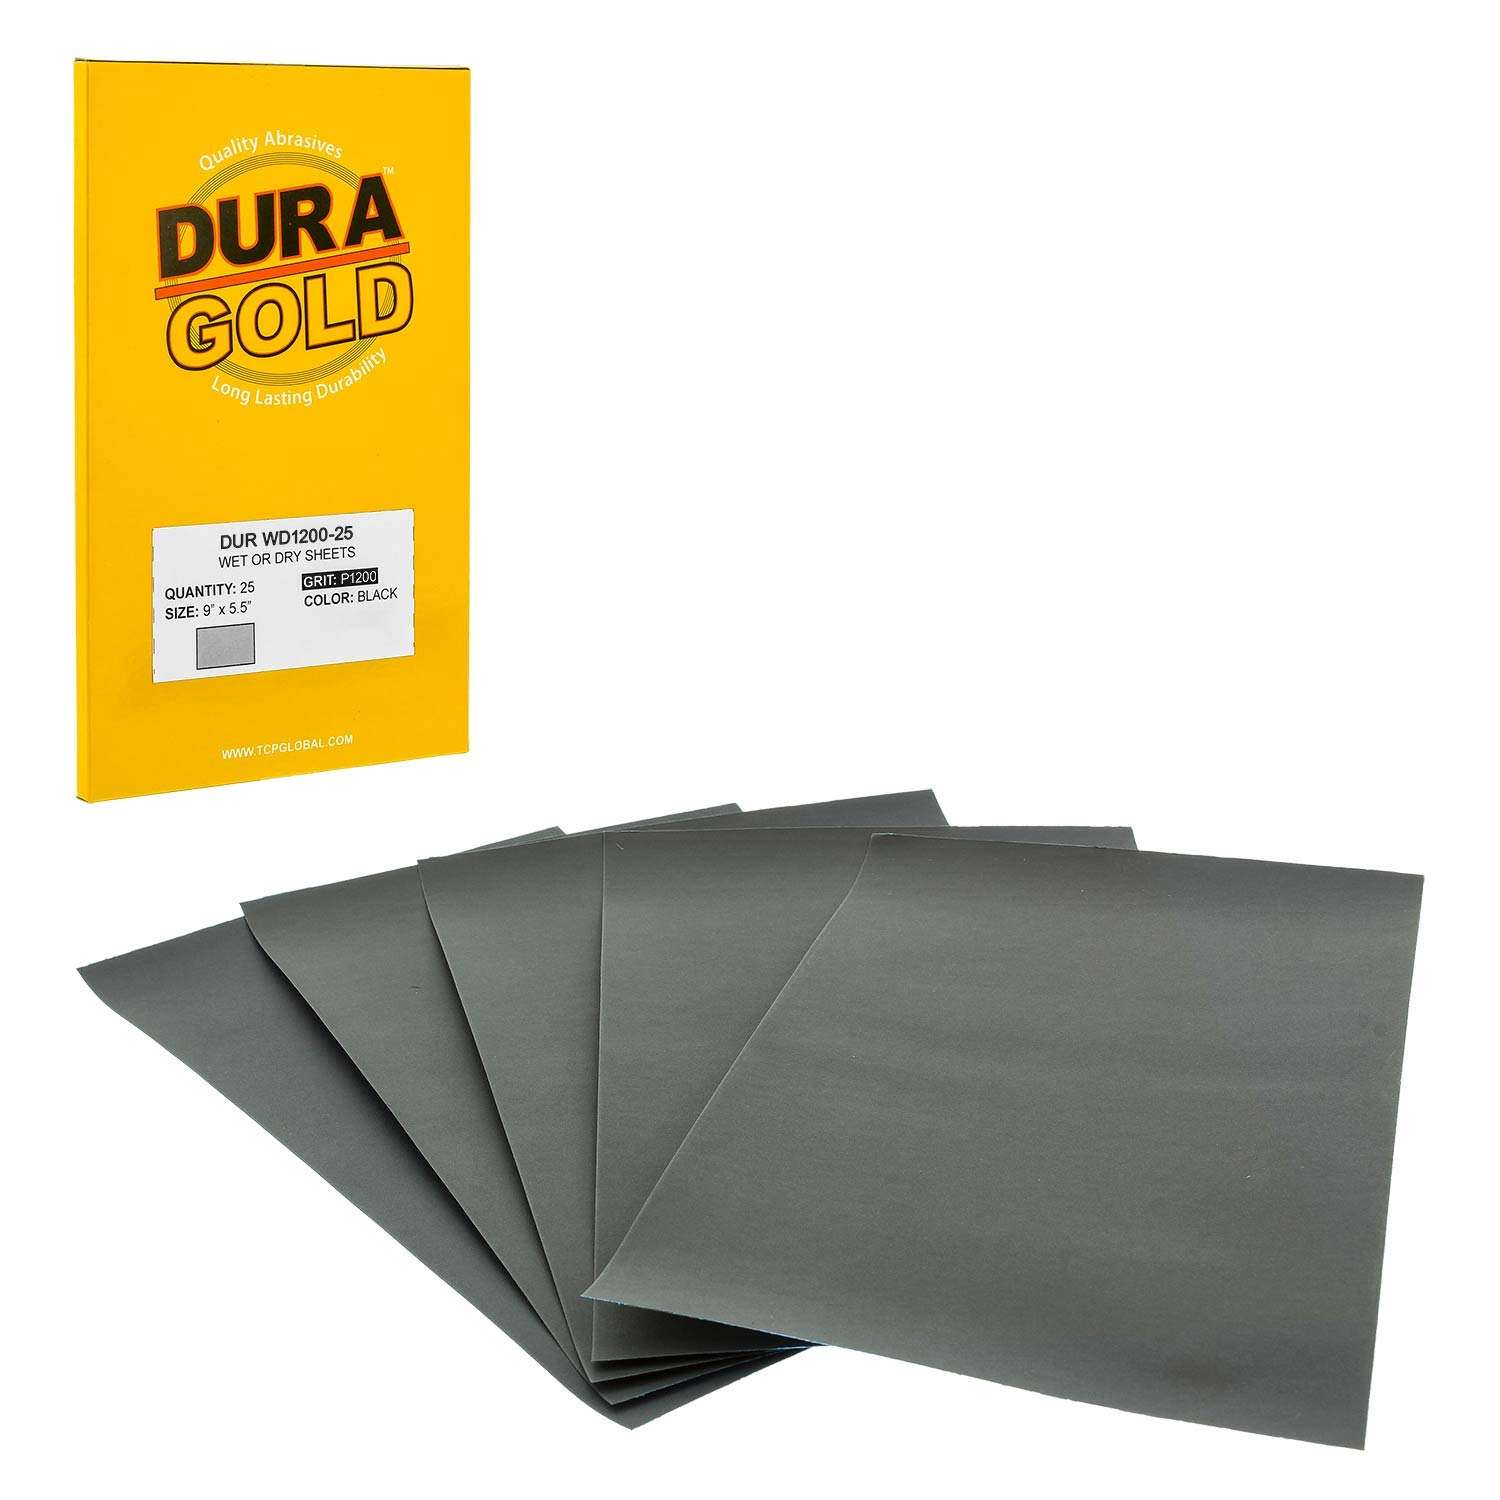 Professional Cut to 5-1//2 x 9 Sheets Variety Pack 150, 220, 320, 400, 600 Automotive Woodworking Crafts -Box of 25 Sandpaper Finishing Sheets 5-Each of Dura-Gold Premium Wet or Dry